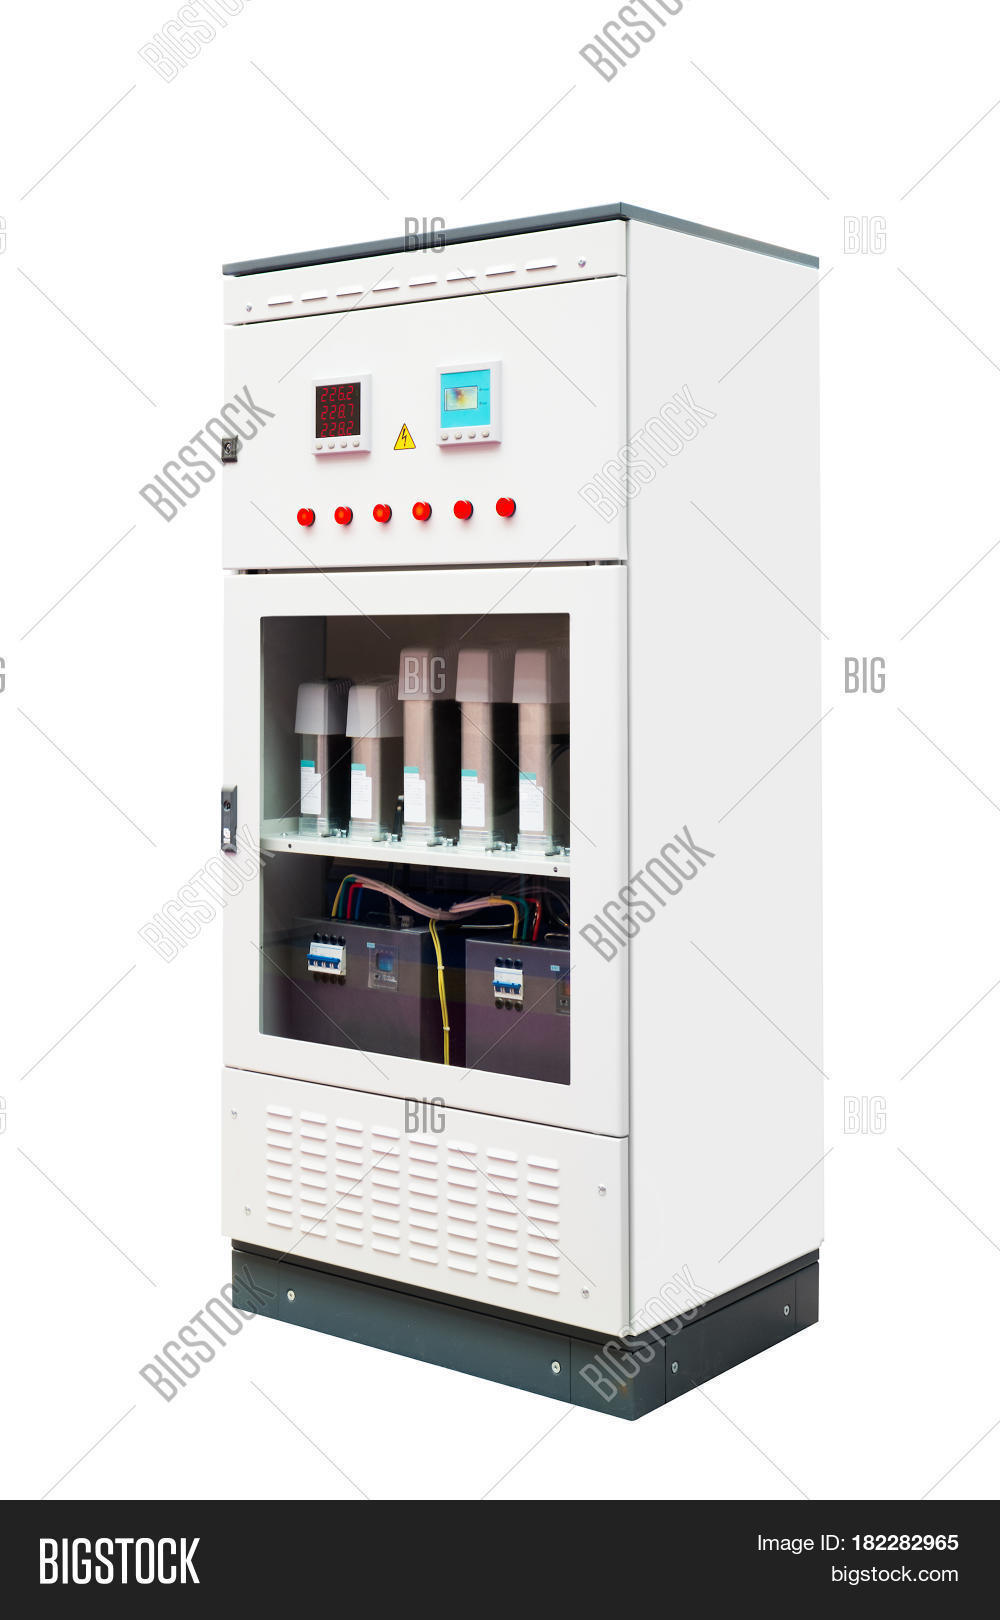 medium resolution of electrical enclosure with its door closed could be electrical circuit breaker fuse box control panel